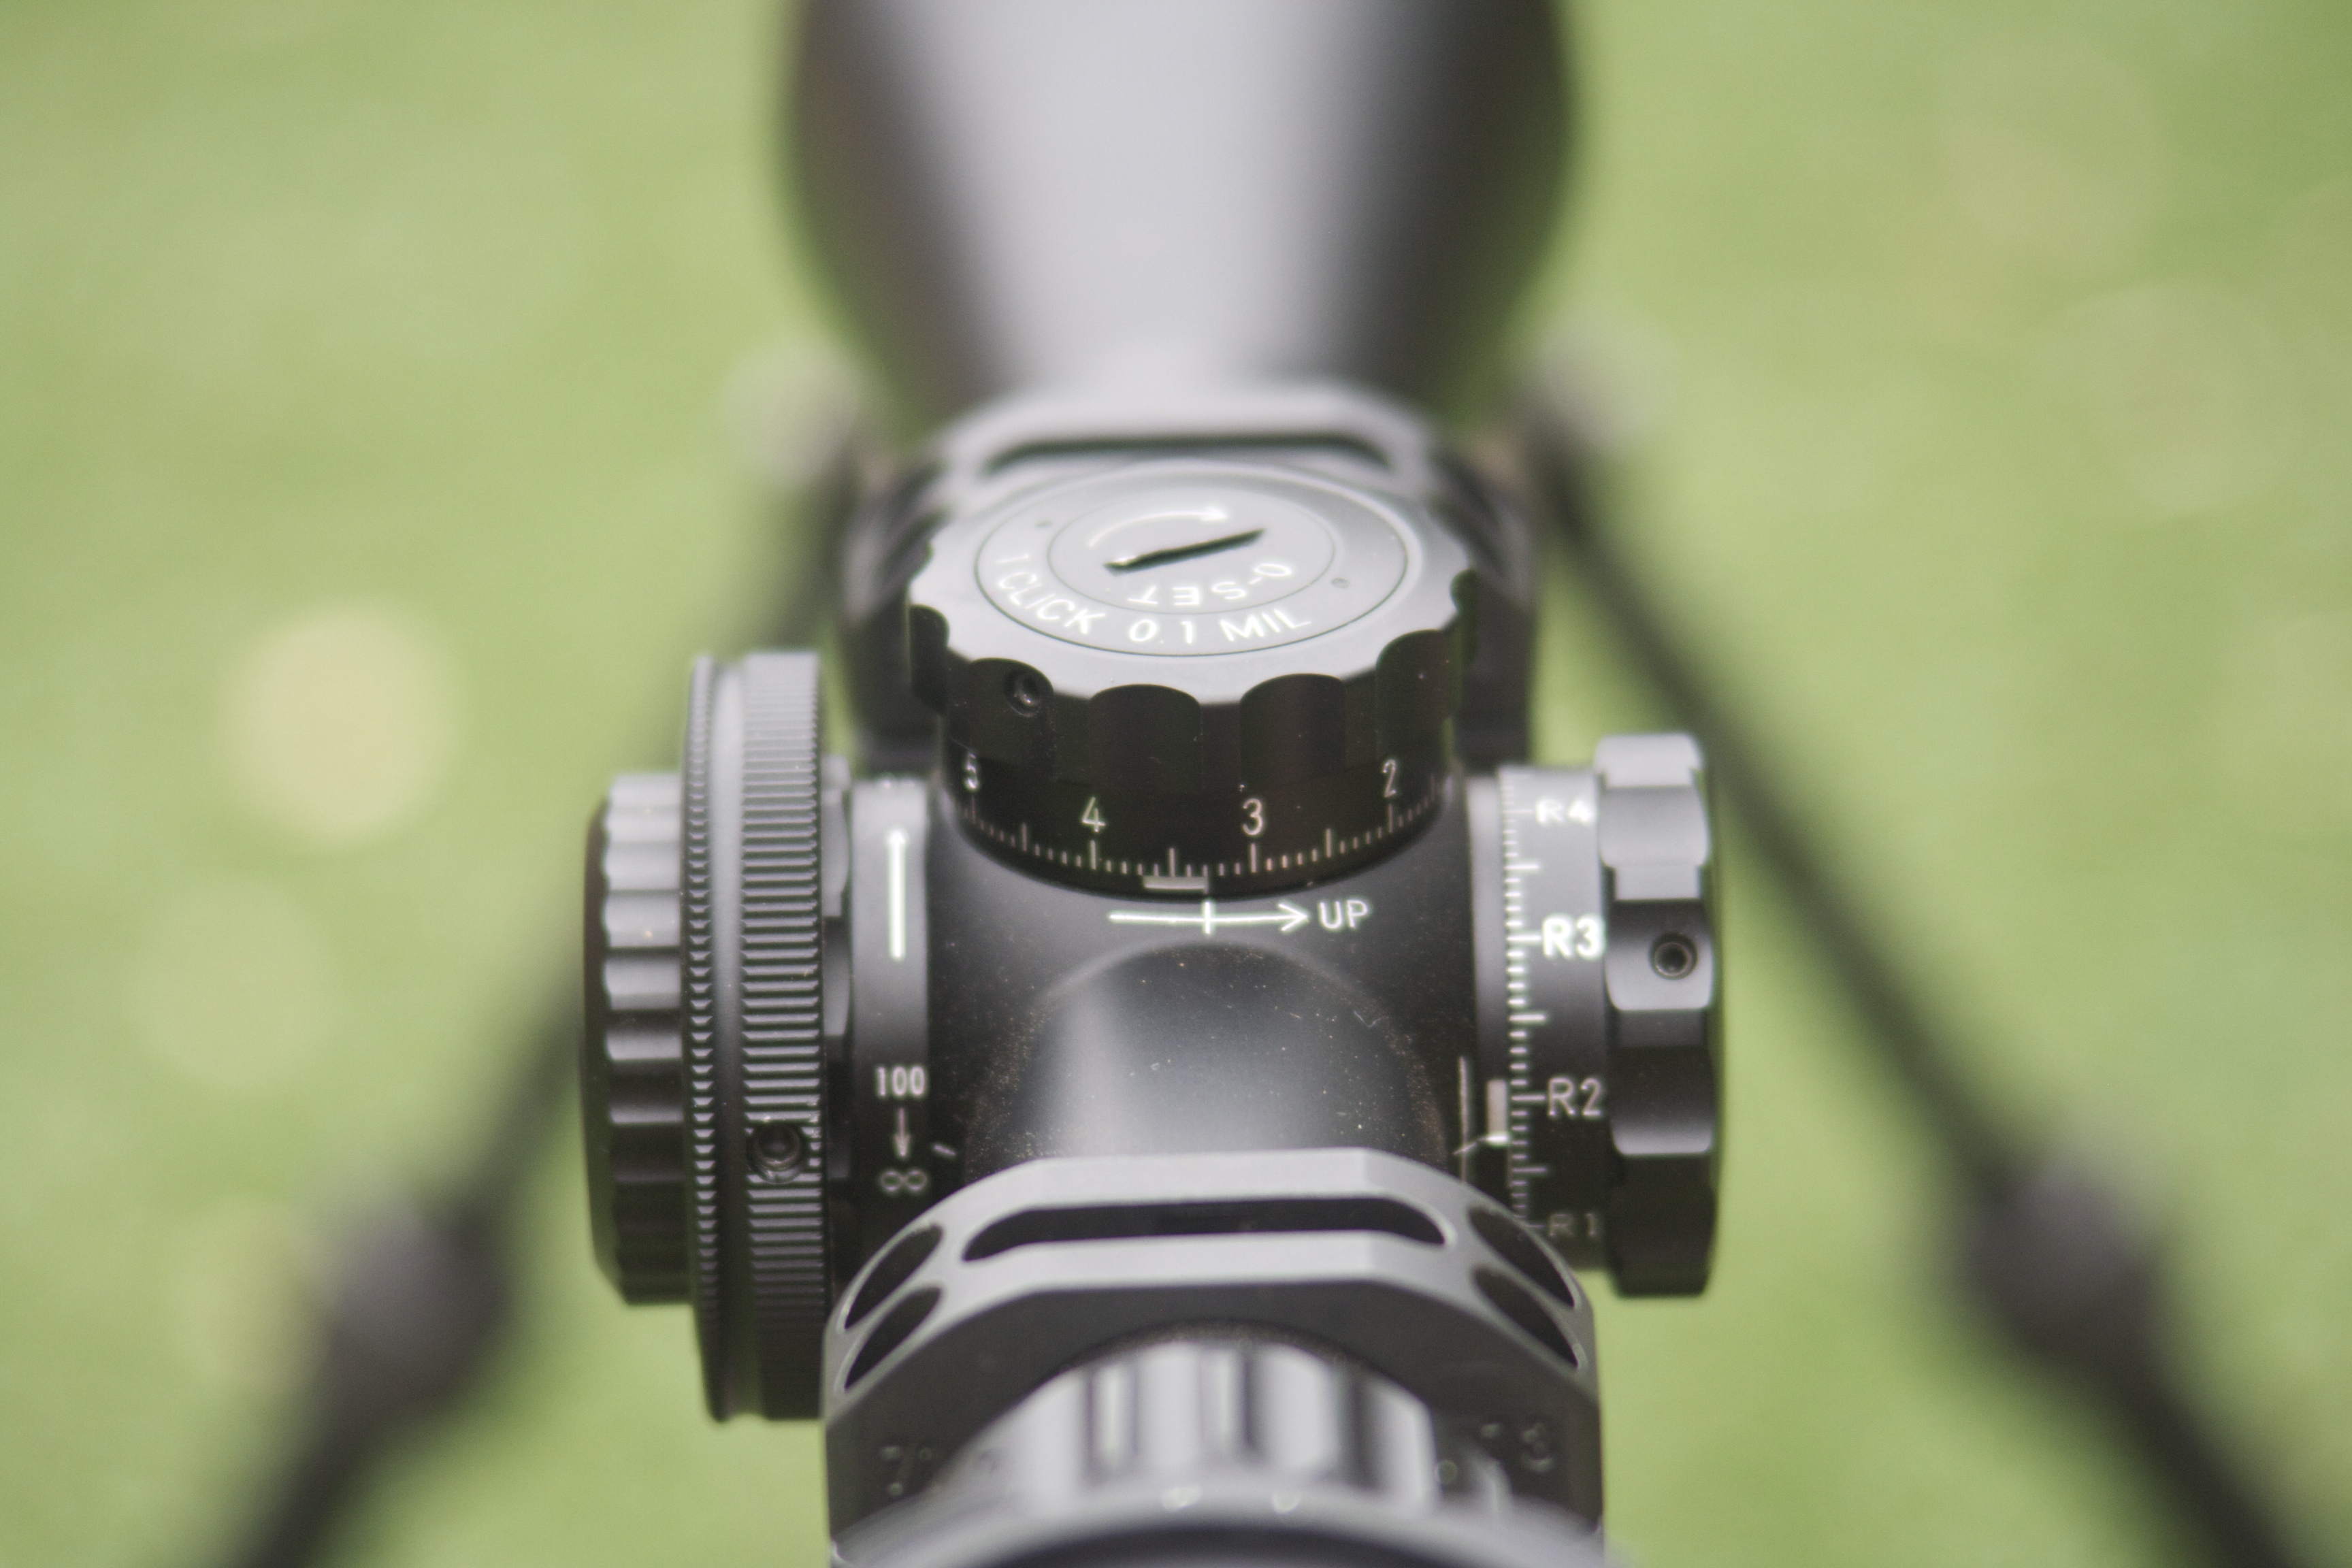 Close up of the focussing wheel.  The design blends well into the sleek scope body and the focus range can easily be seen.